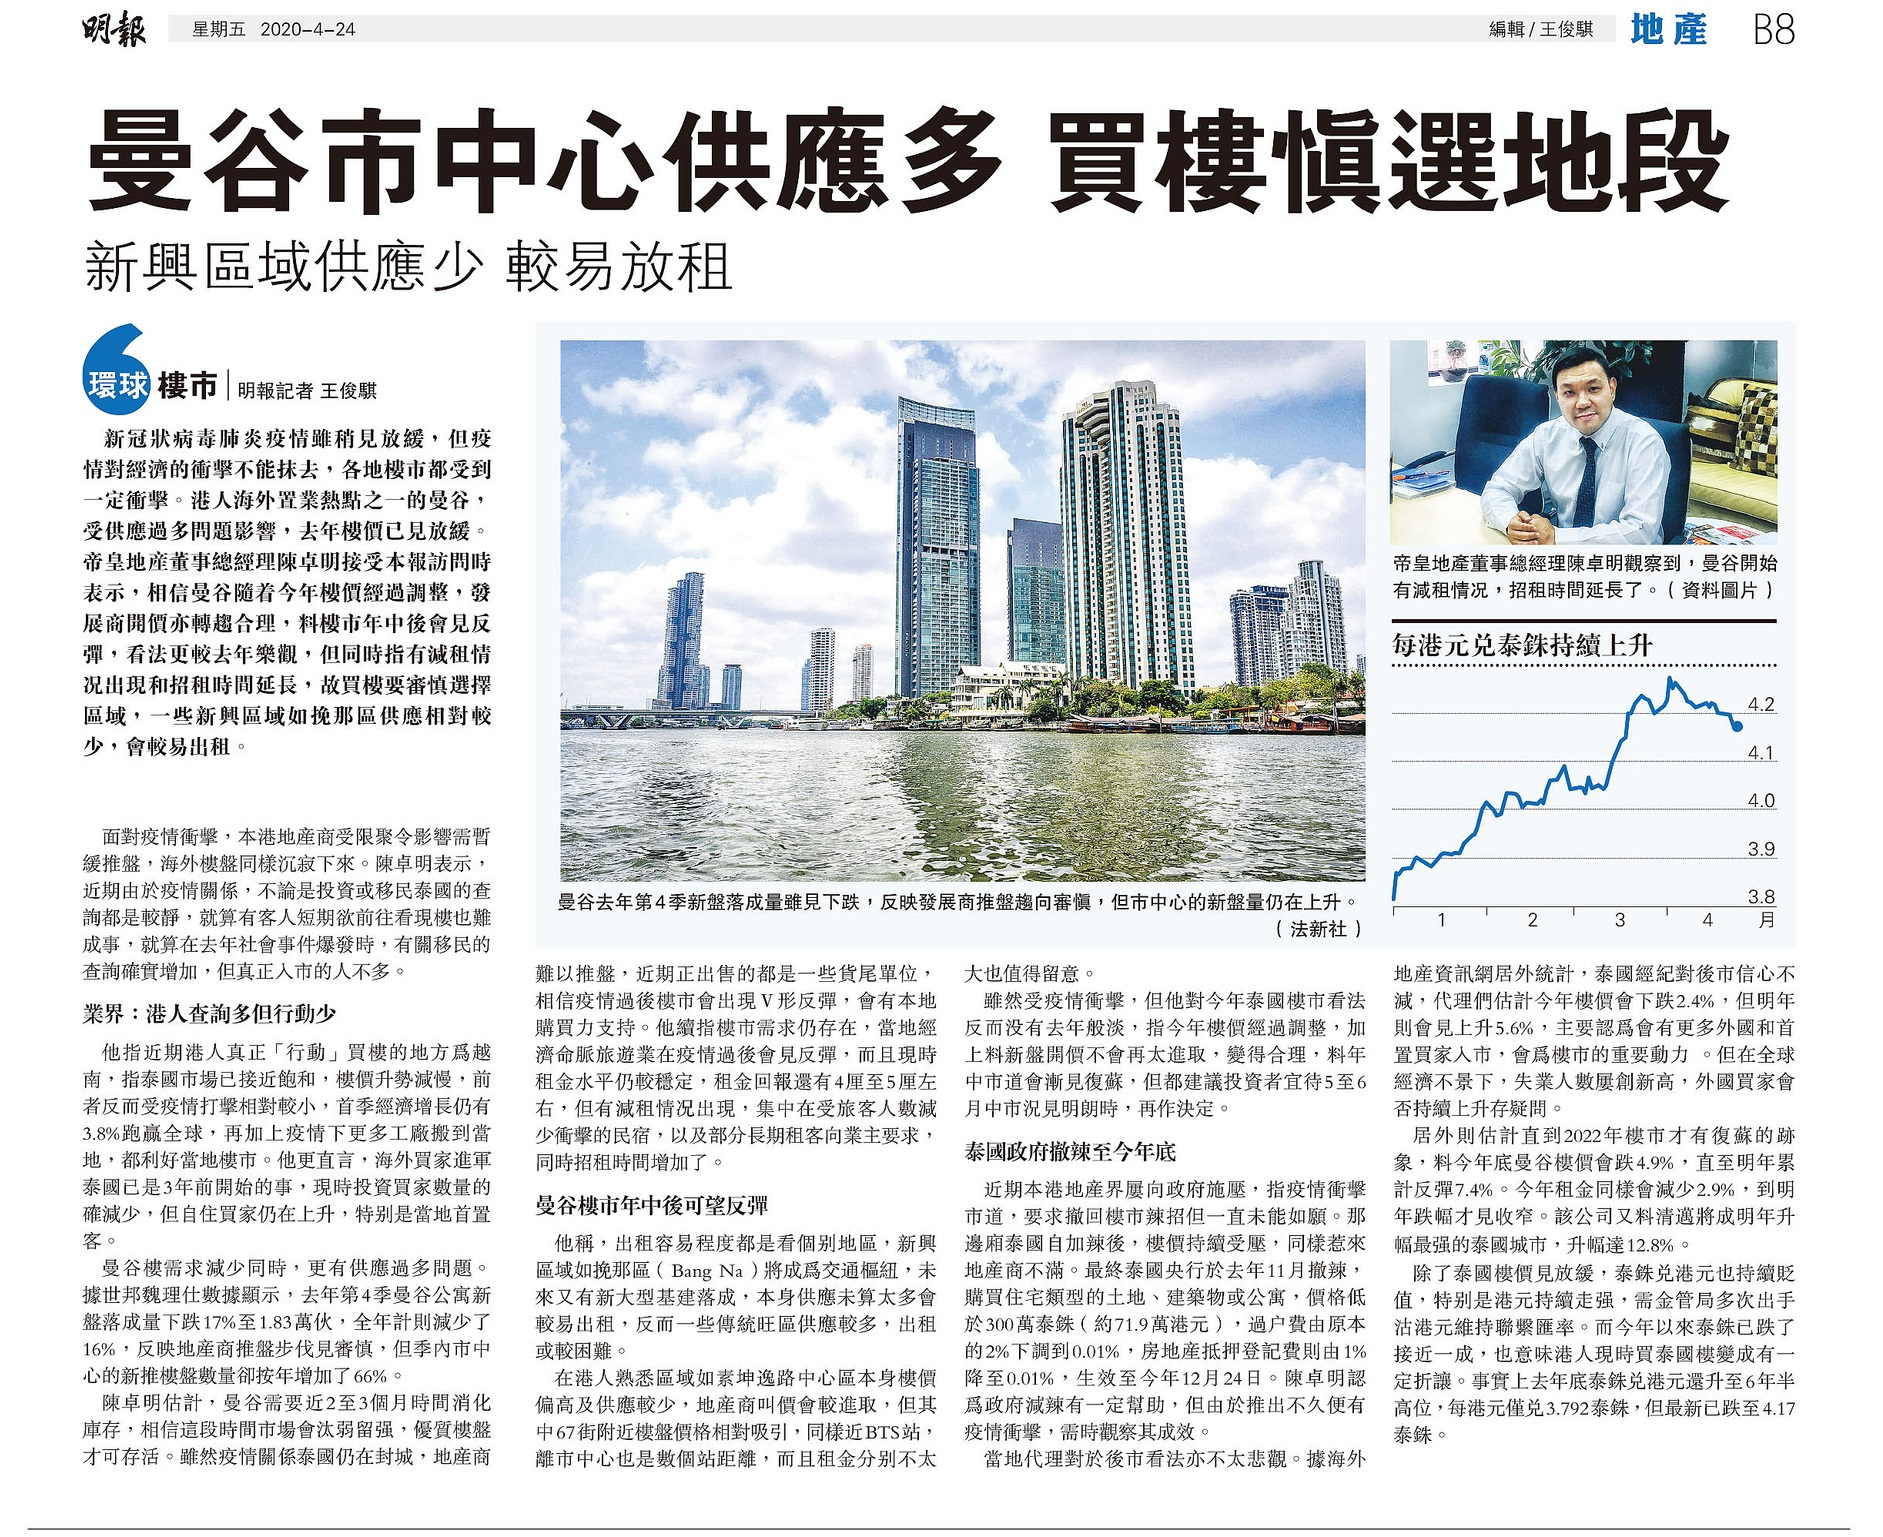 Golden Emperor Terence Chan discusses  COVID-19's Impact on Bangkok's Real Estate on Ming Pao